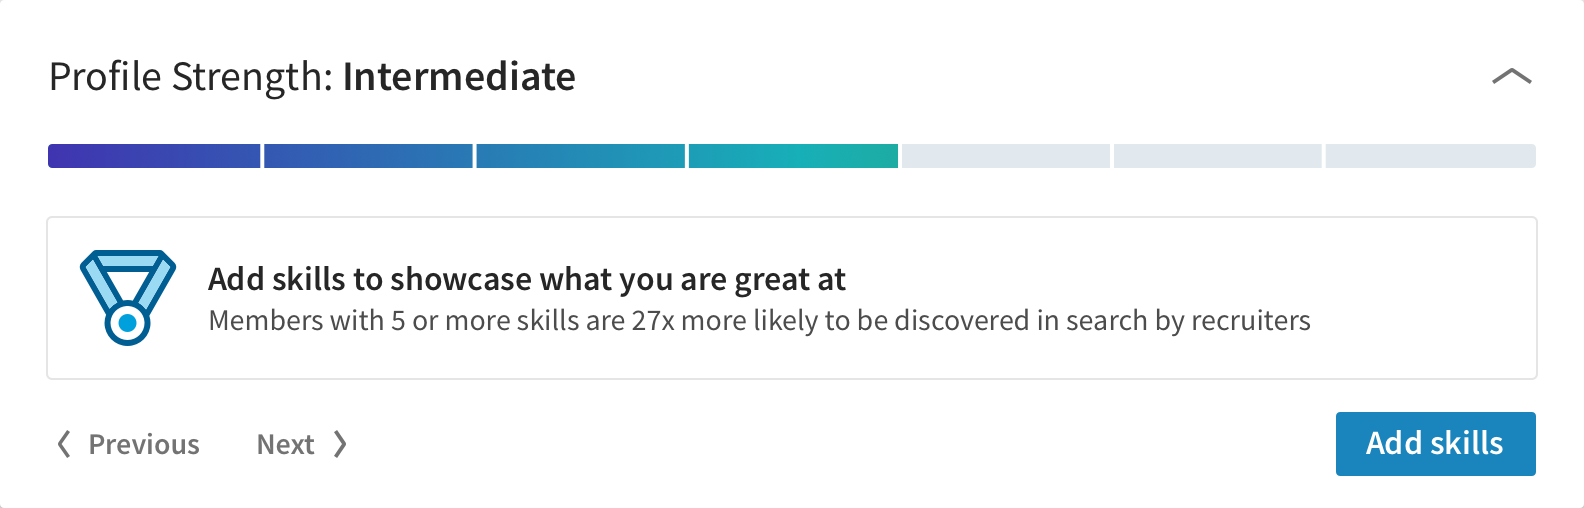 LinkedIn onboarding user profile strength meter